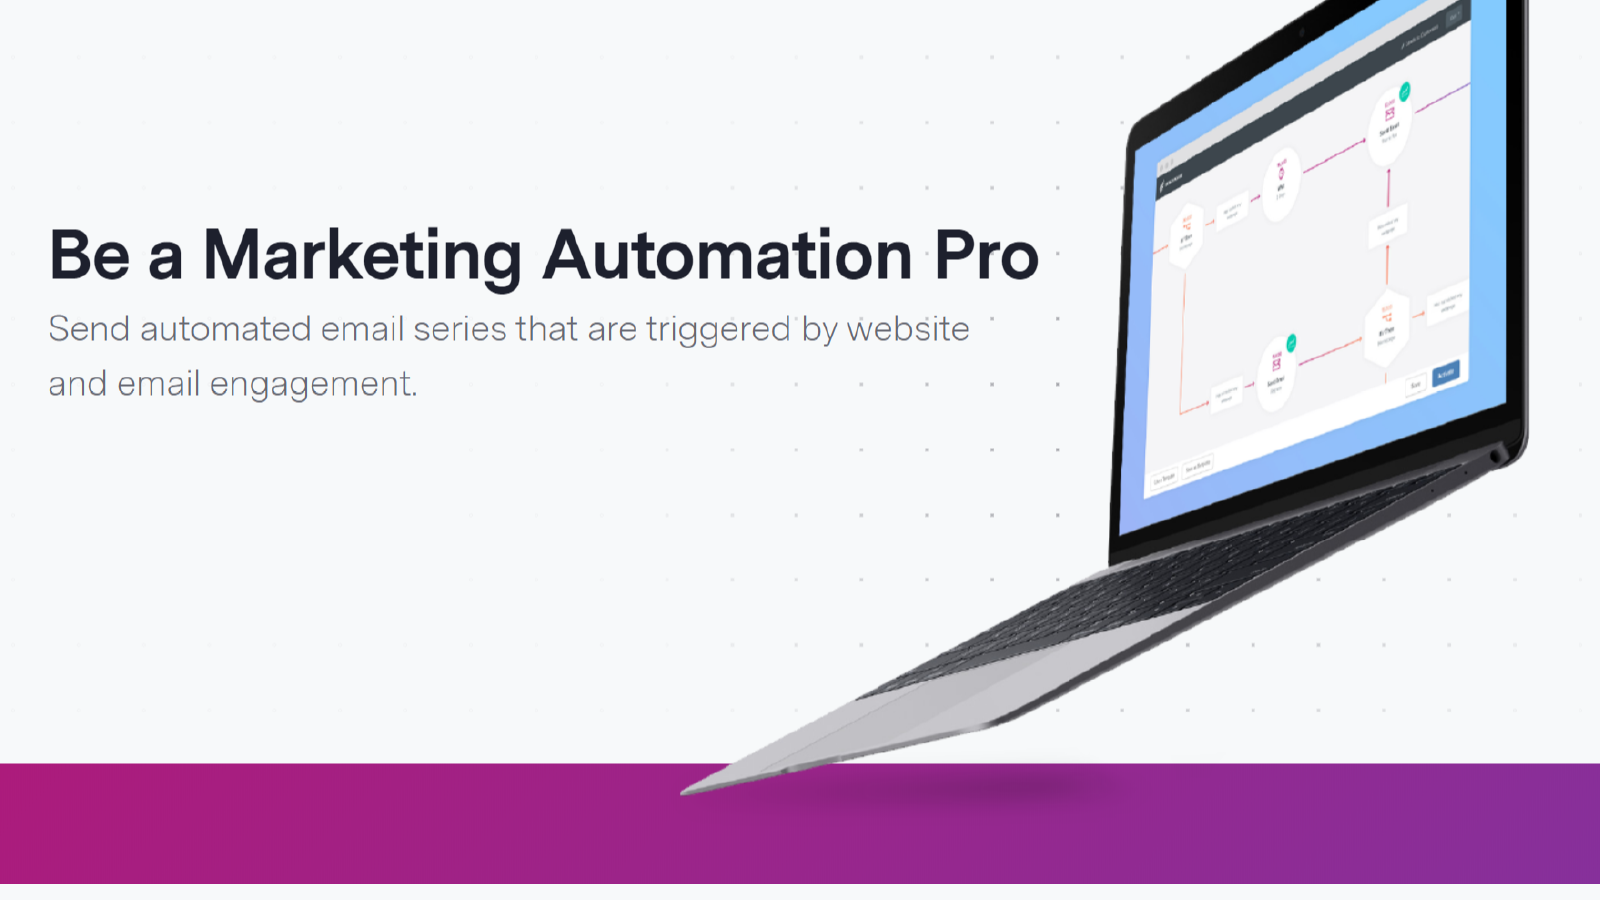 Relax, Let Automation Pro do the Follow Up for You